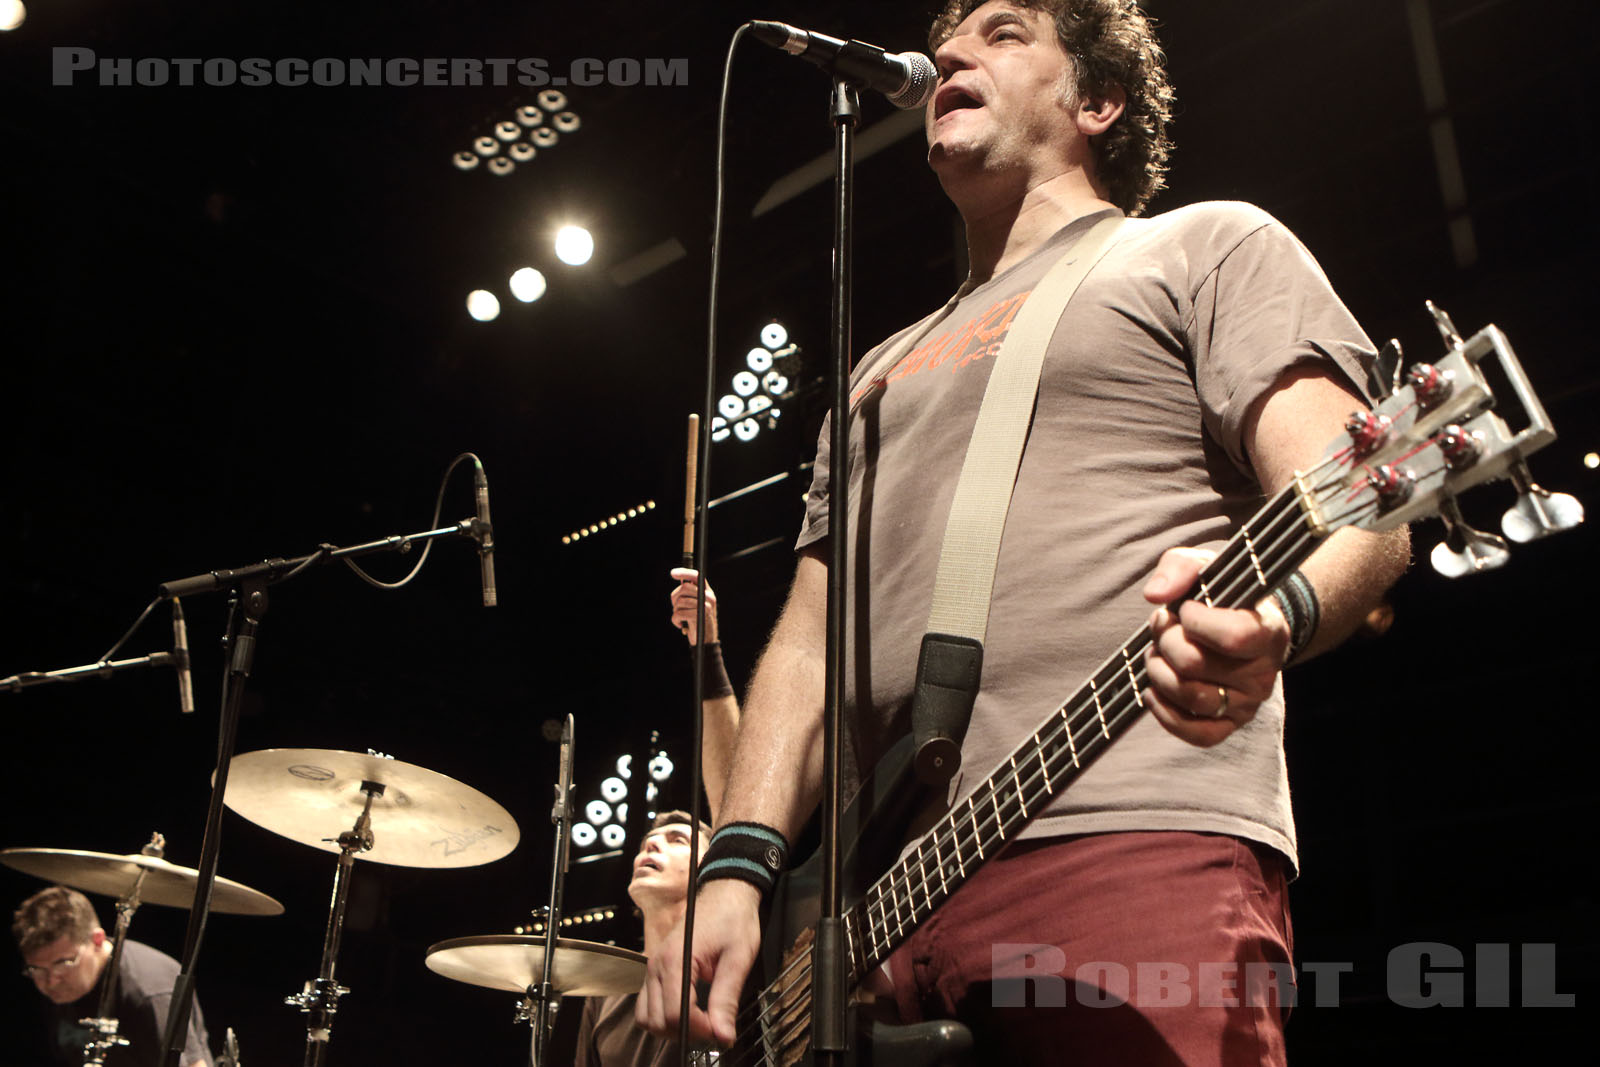 SHELLAC - 2016-06-01 - PARIS - Gaite Lyrique